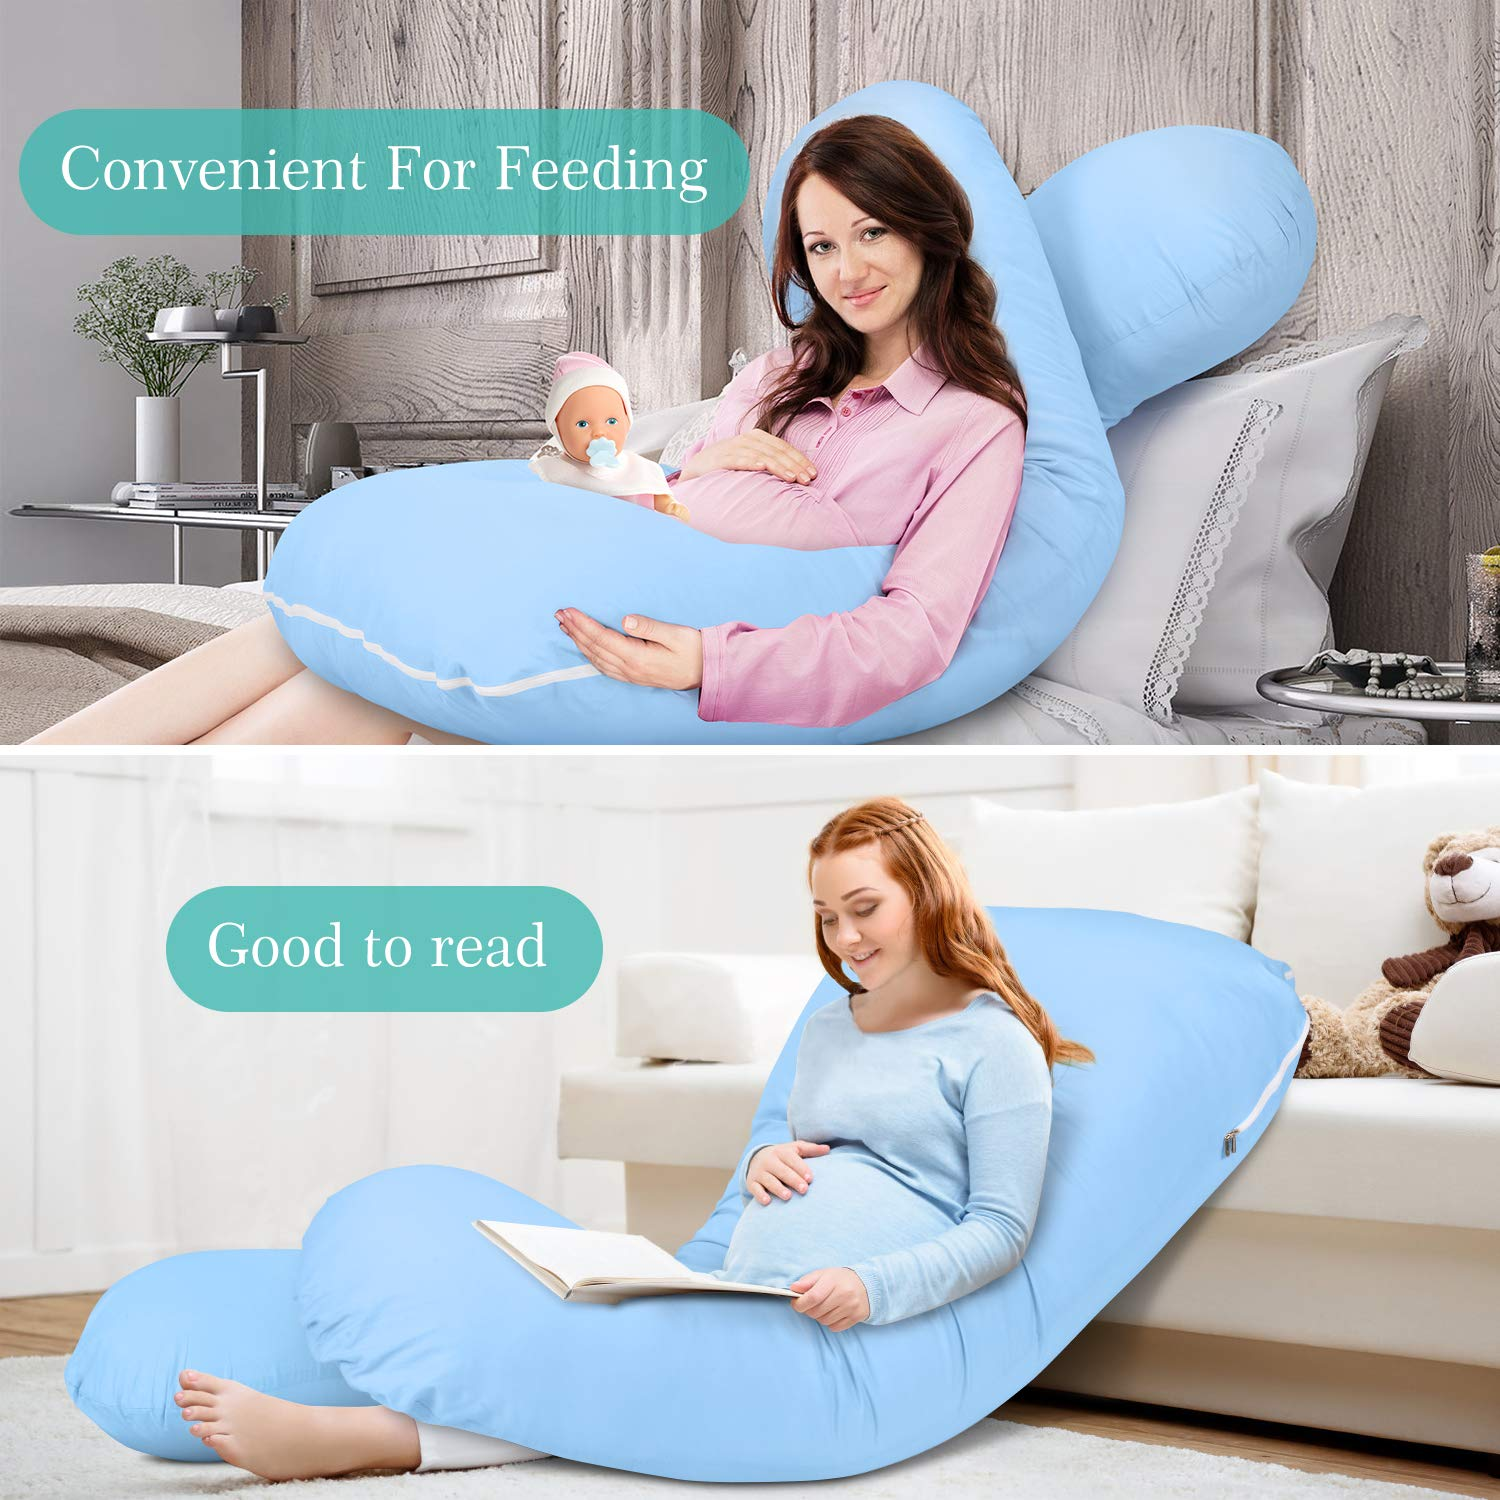 Amagoing 57 inches Pregnancy Pillow U Shaped Maternity Full Body Pillow for Women with Hip Washable Cotton Cover Included Blue Back Pain Leg